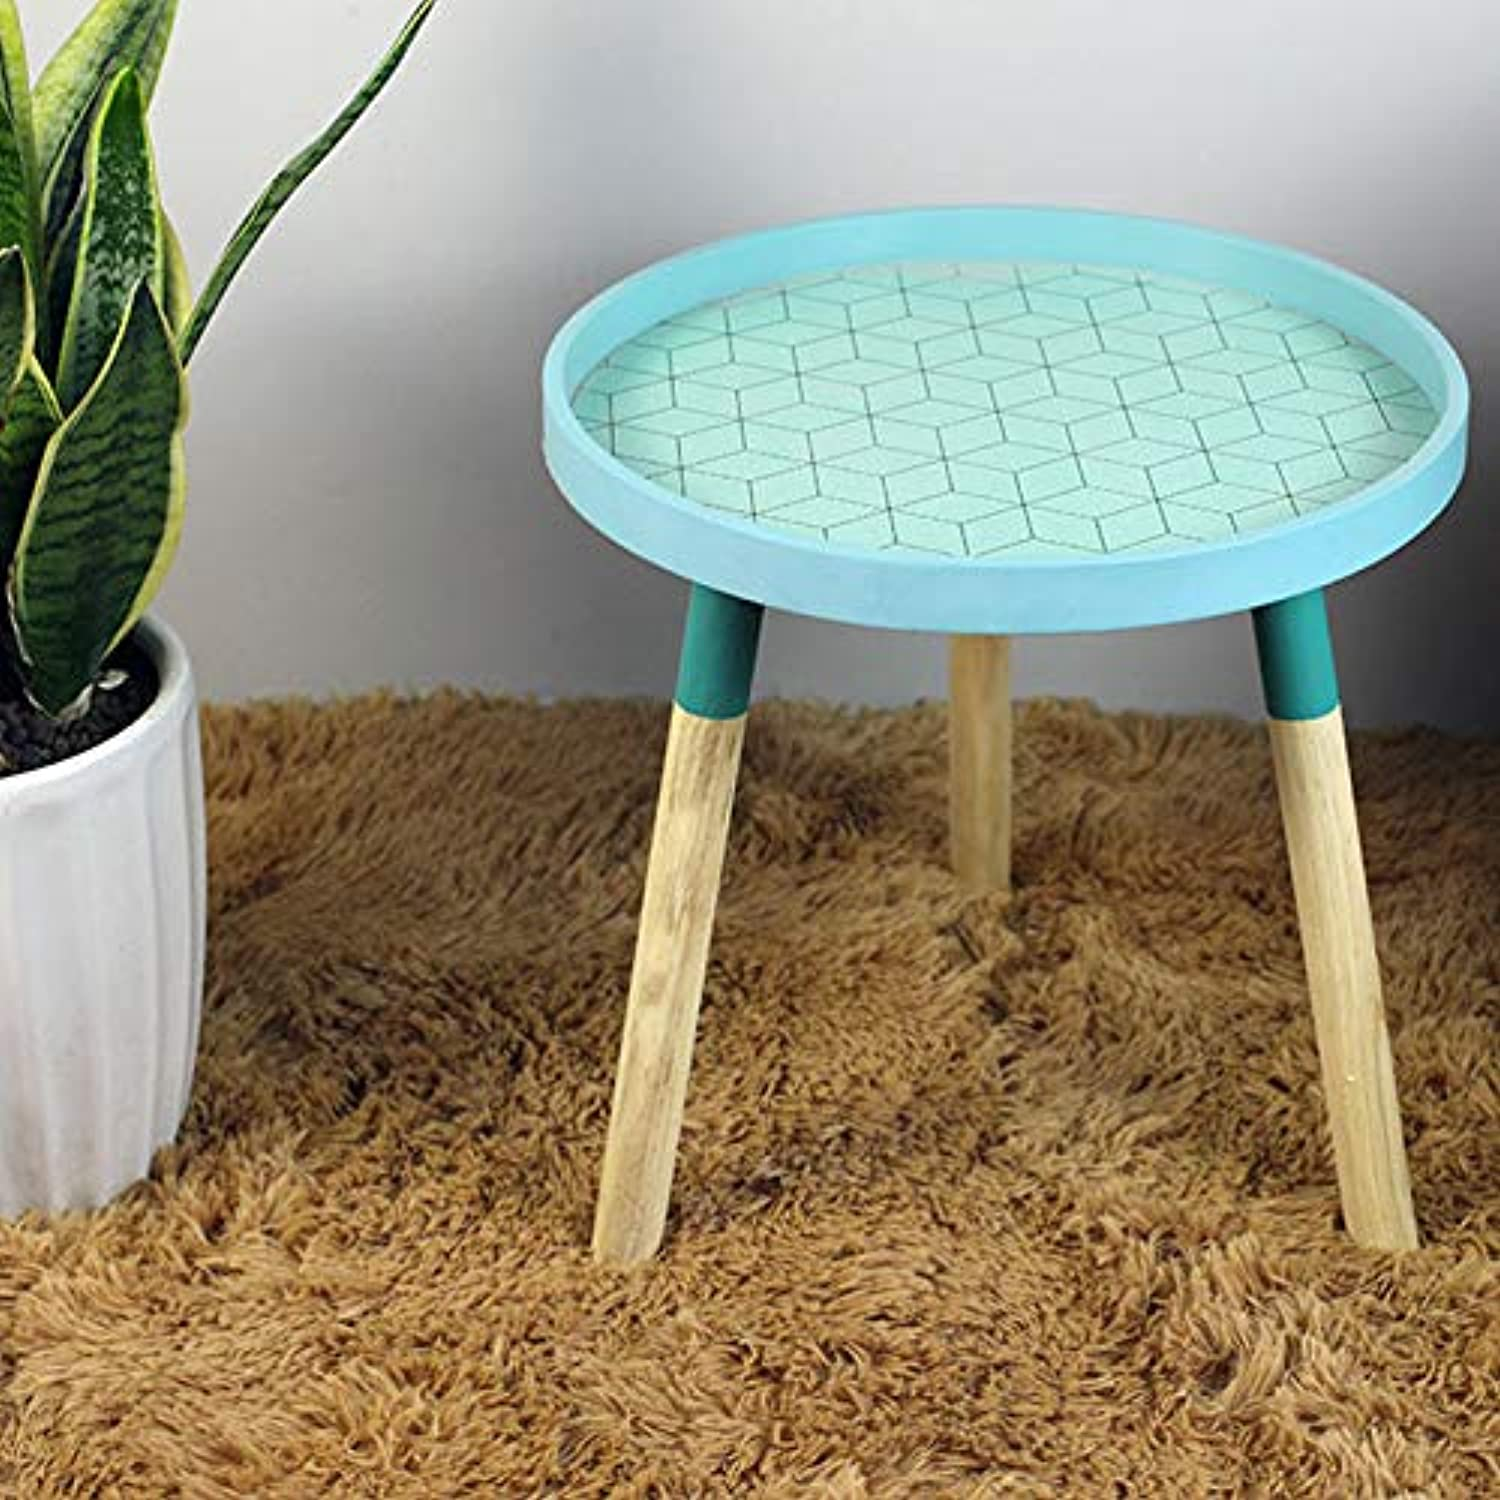 Nordic Small Fresh Mini Coffee Tables Creative Wood Low Table Round Tables Living Room Furniture Home Furniture Home Decorations,A